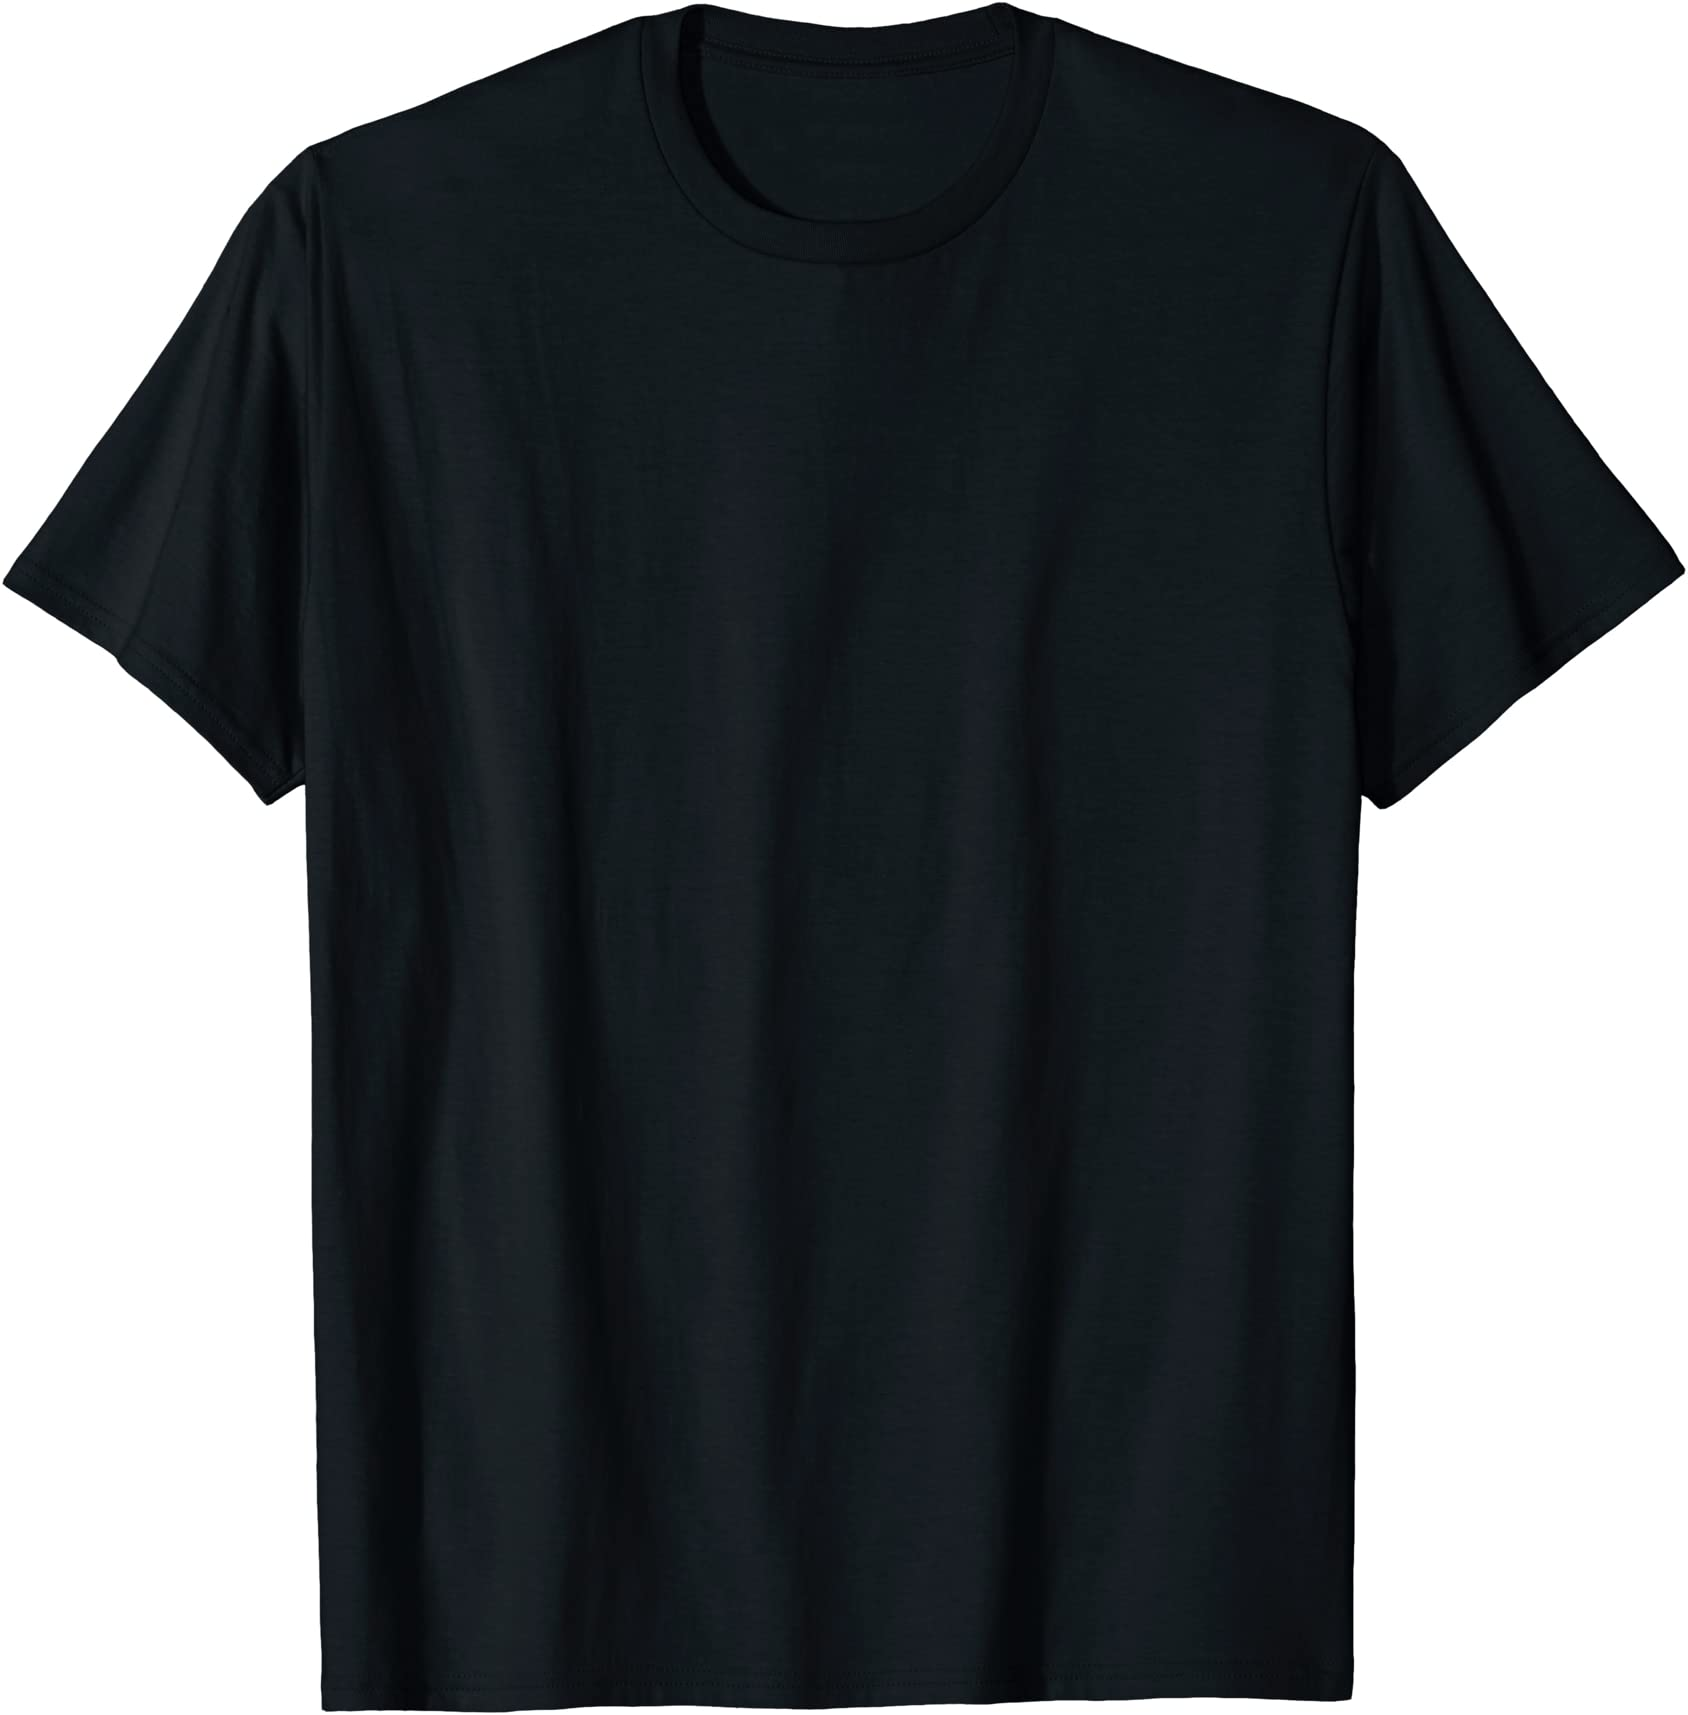 Clothing Tee Shirt to Be A Social Worker Shirt